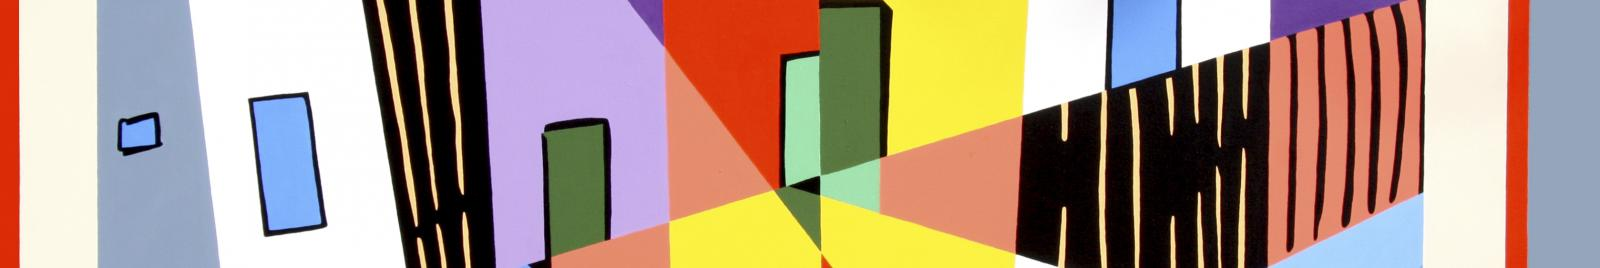 Robert Rooney, After Colonial Cubism 1993, synthetic polymer paint on canvas, 122 x 198.3 cm, Purchased through the Heide Foundation with the assistance of the Heide Foundation Collectors' Group and the Robert Salzer Foundation 2008